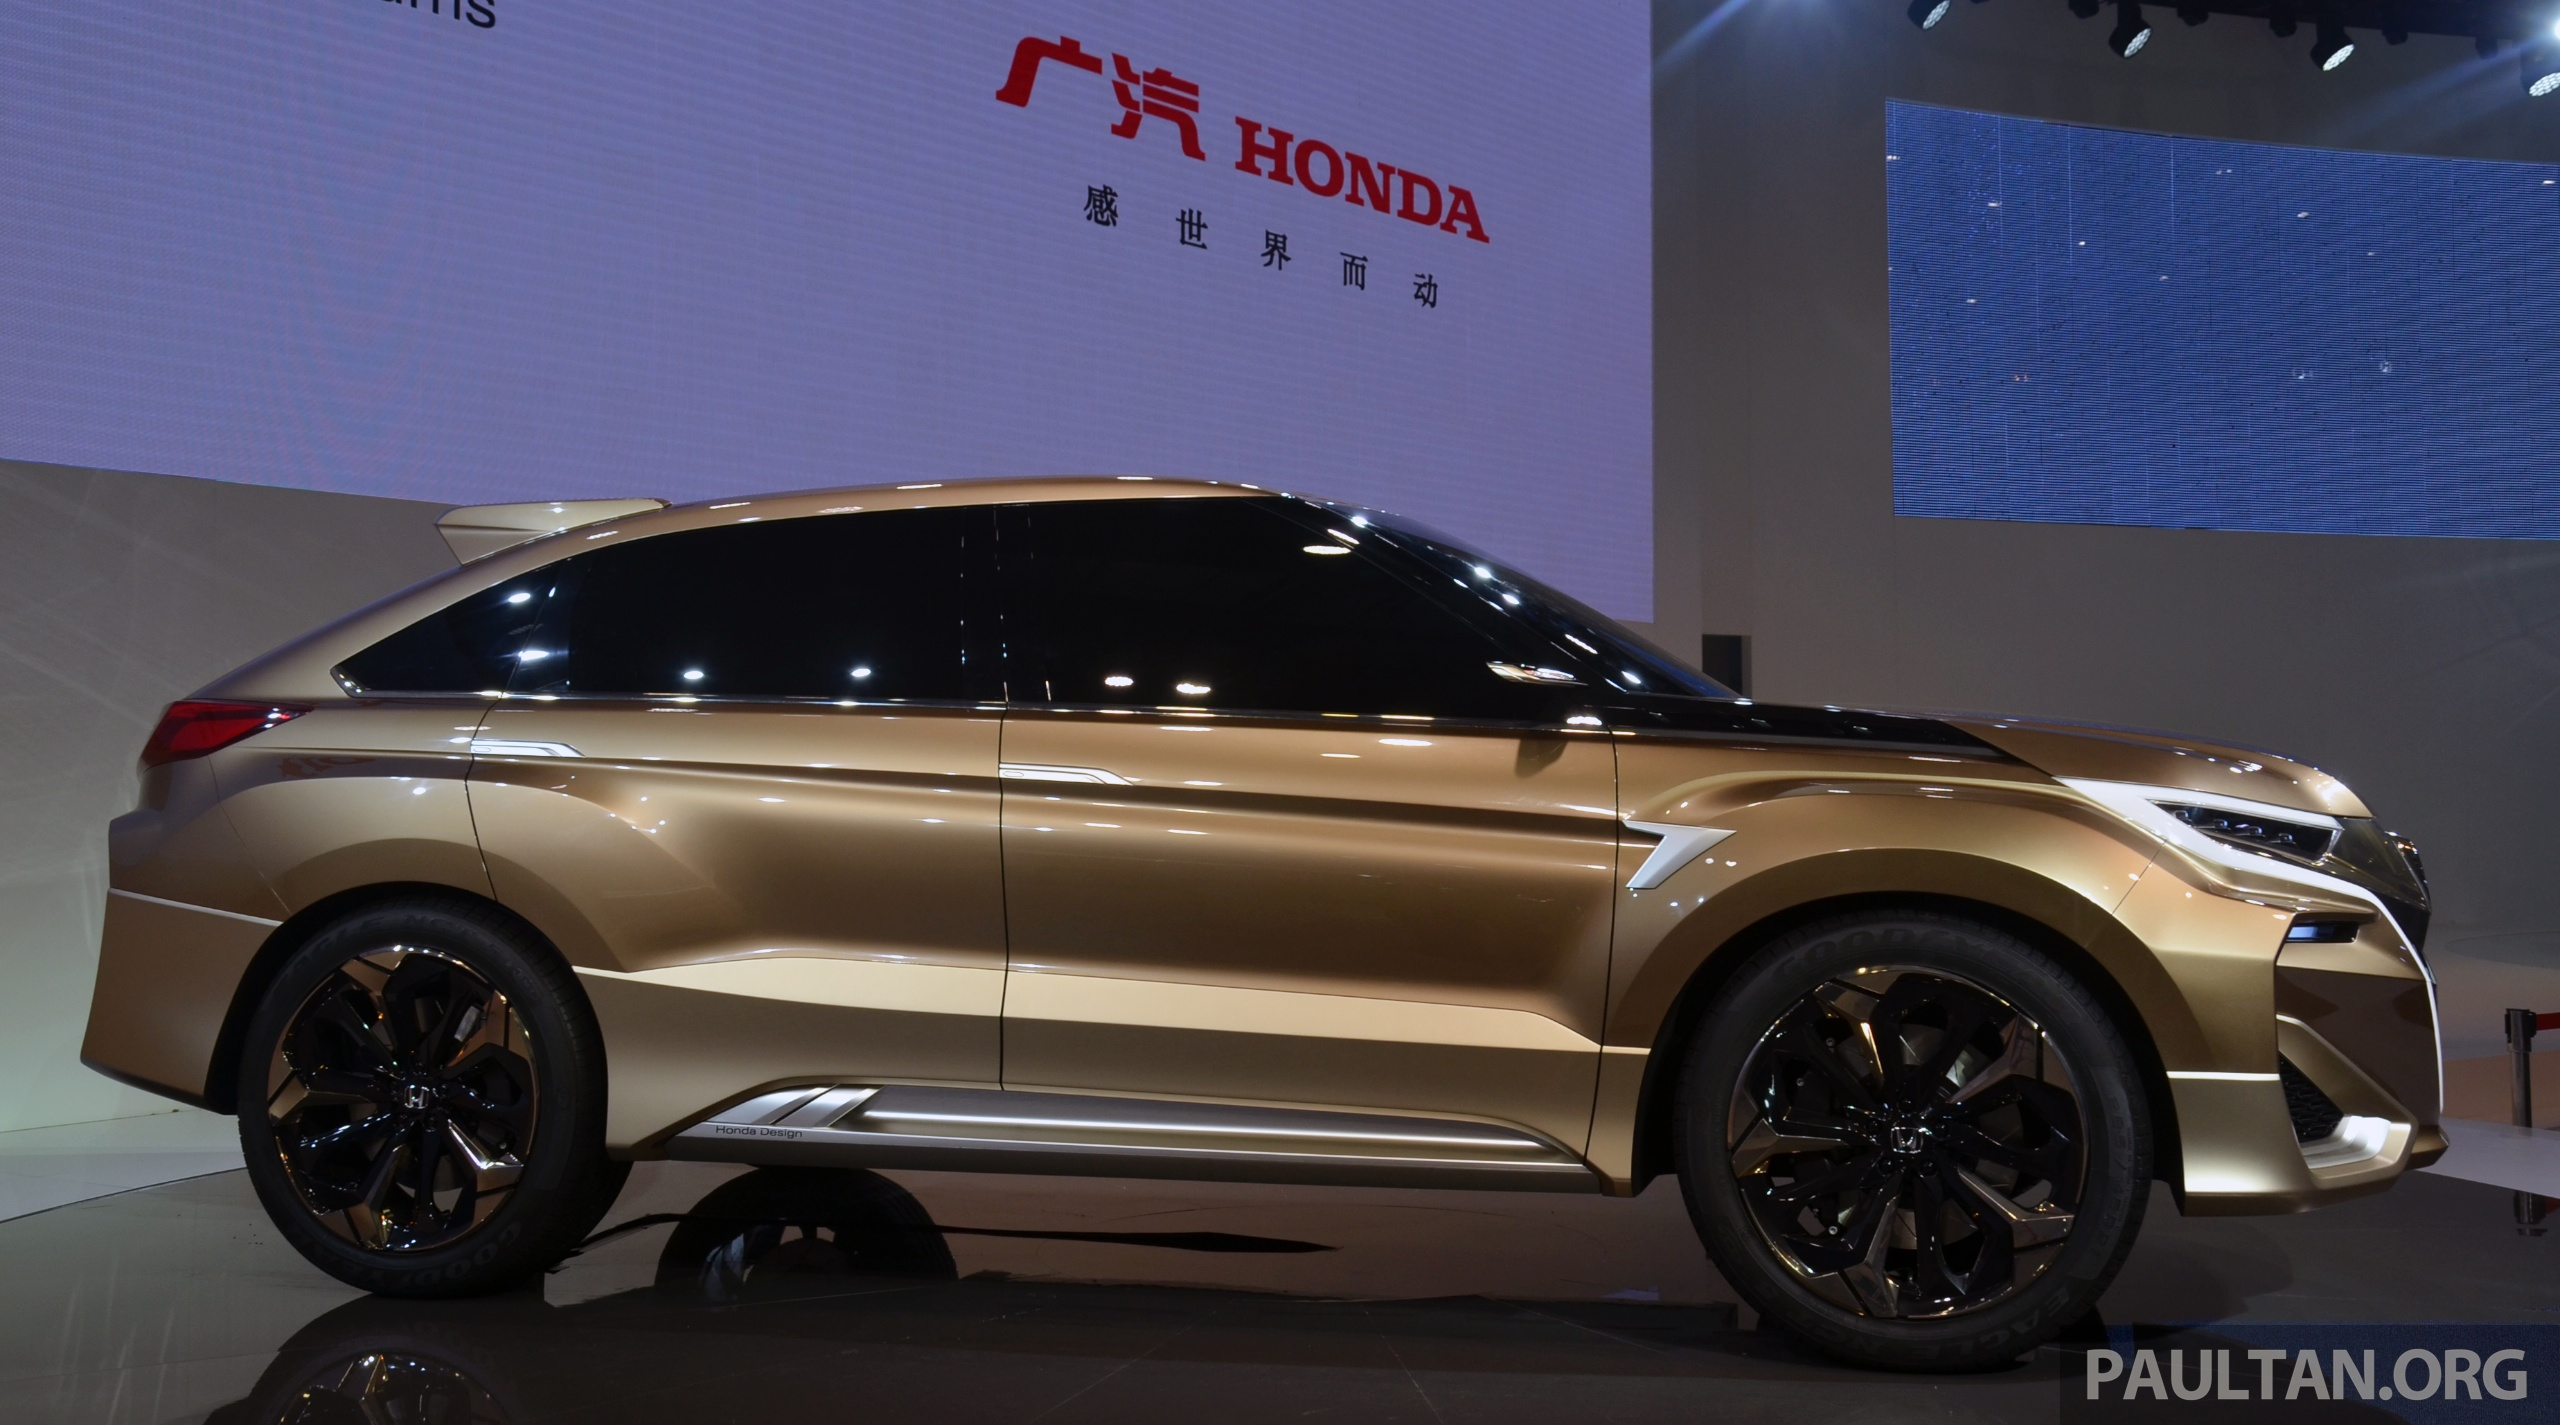 Shanghai 2015 Honda Concept D Previews New Suv Paul Tan